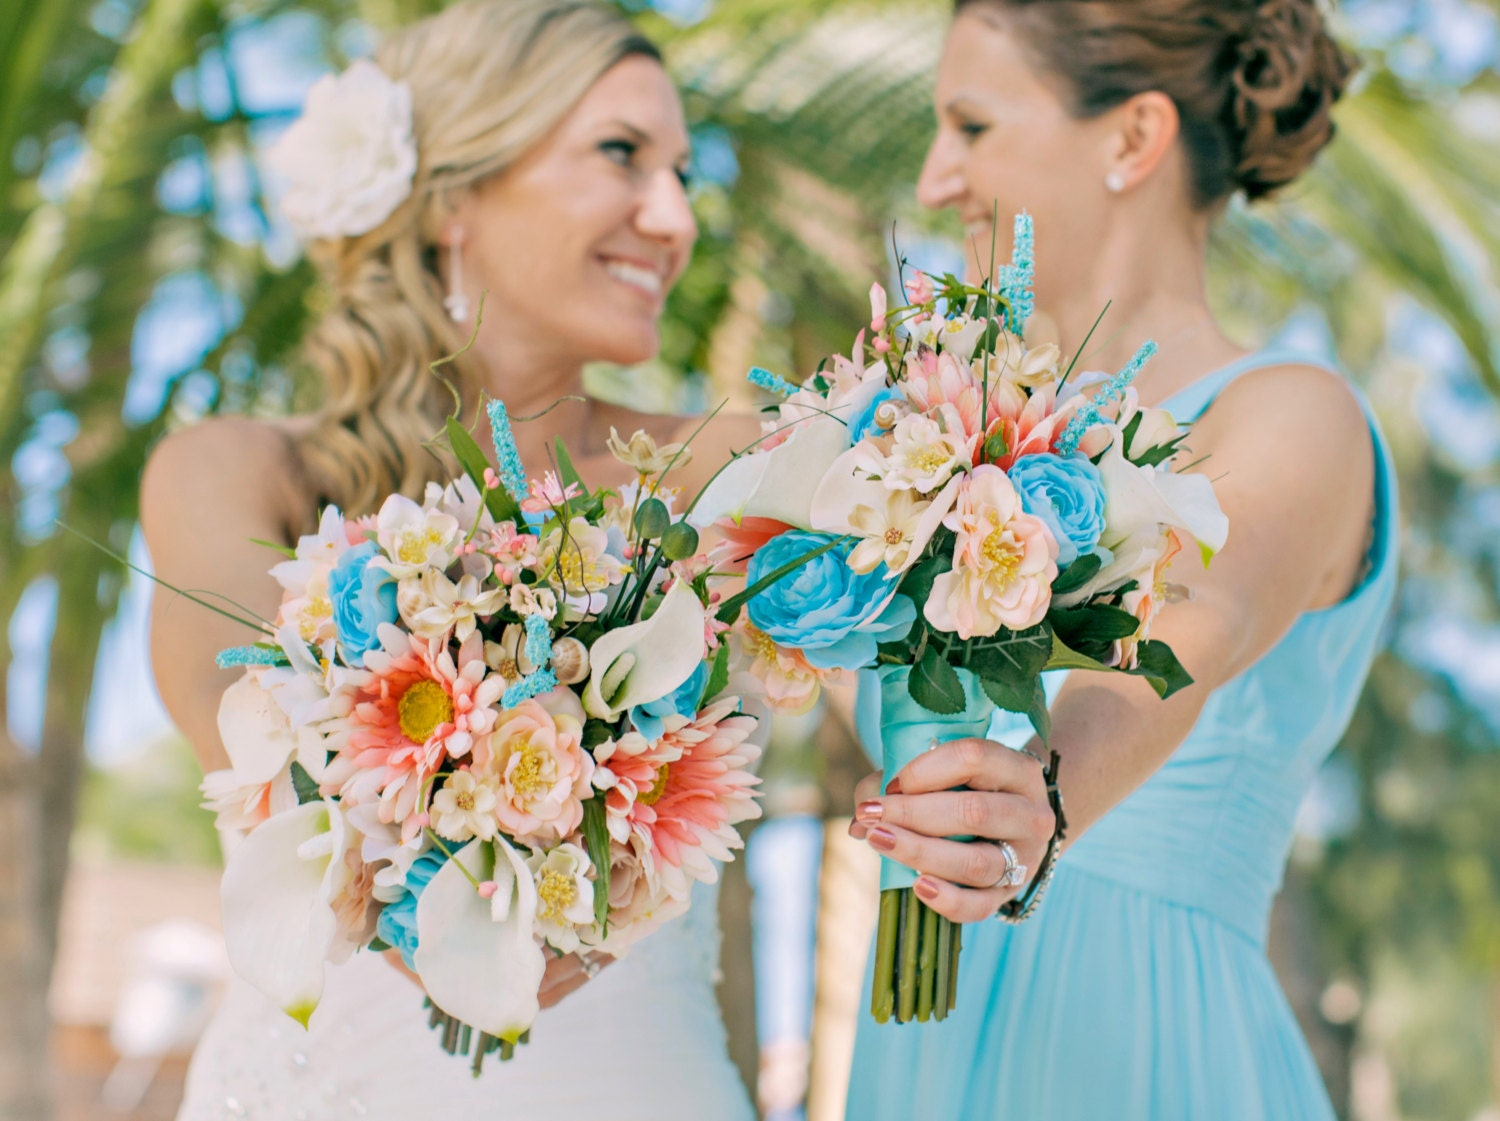 Pictures Of Wedding Party Flowers : Destination wedding flowers beach bouquet by amorebride on